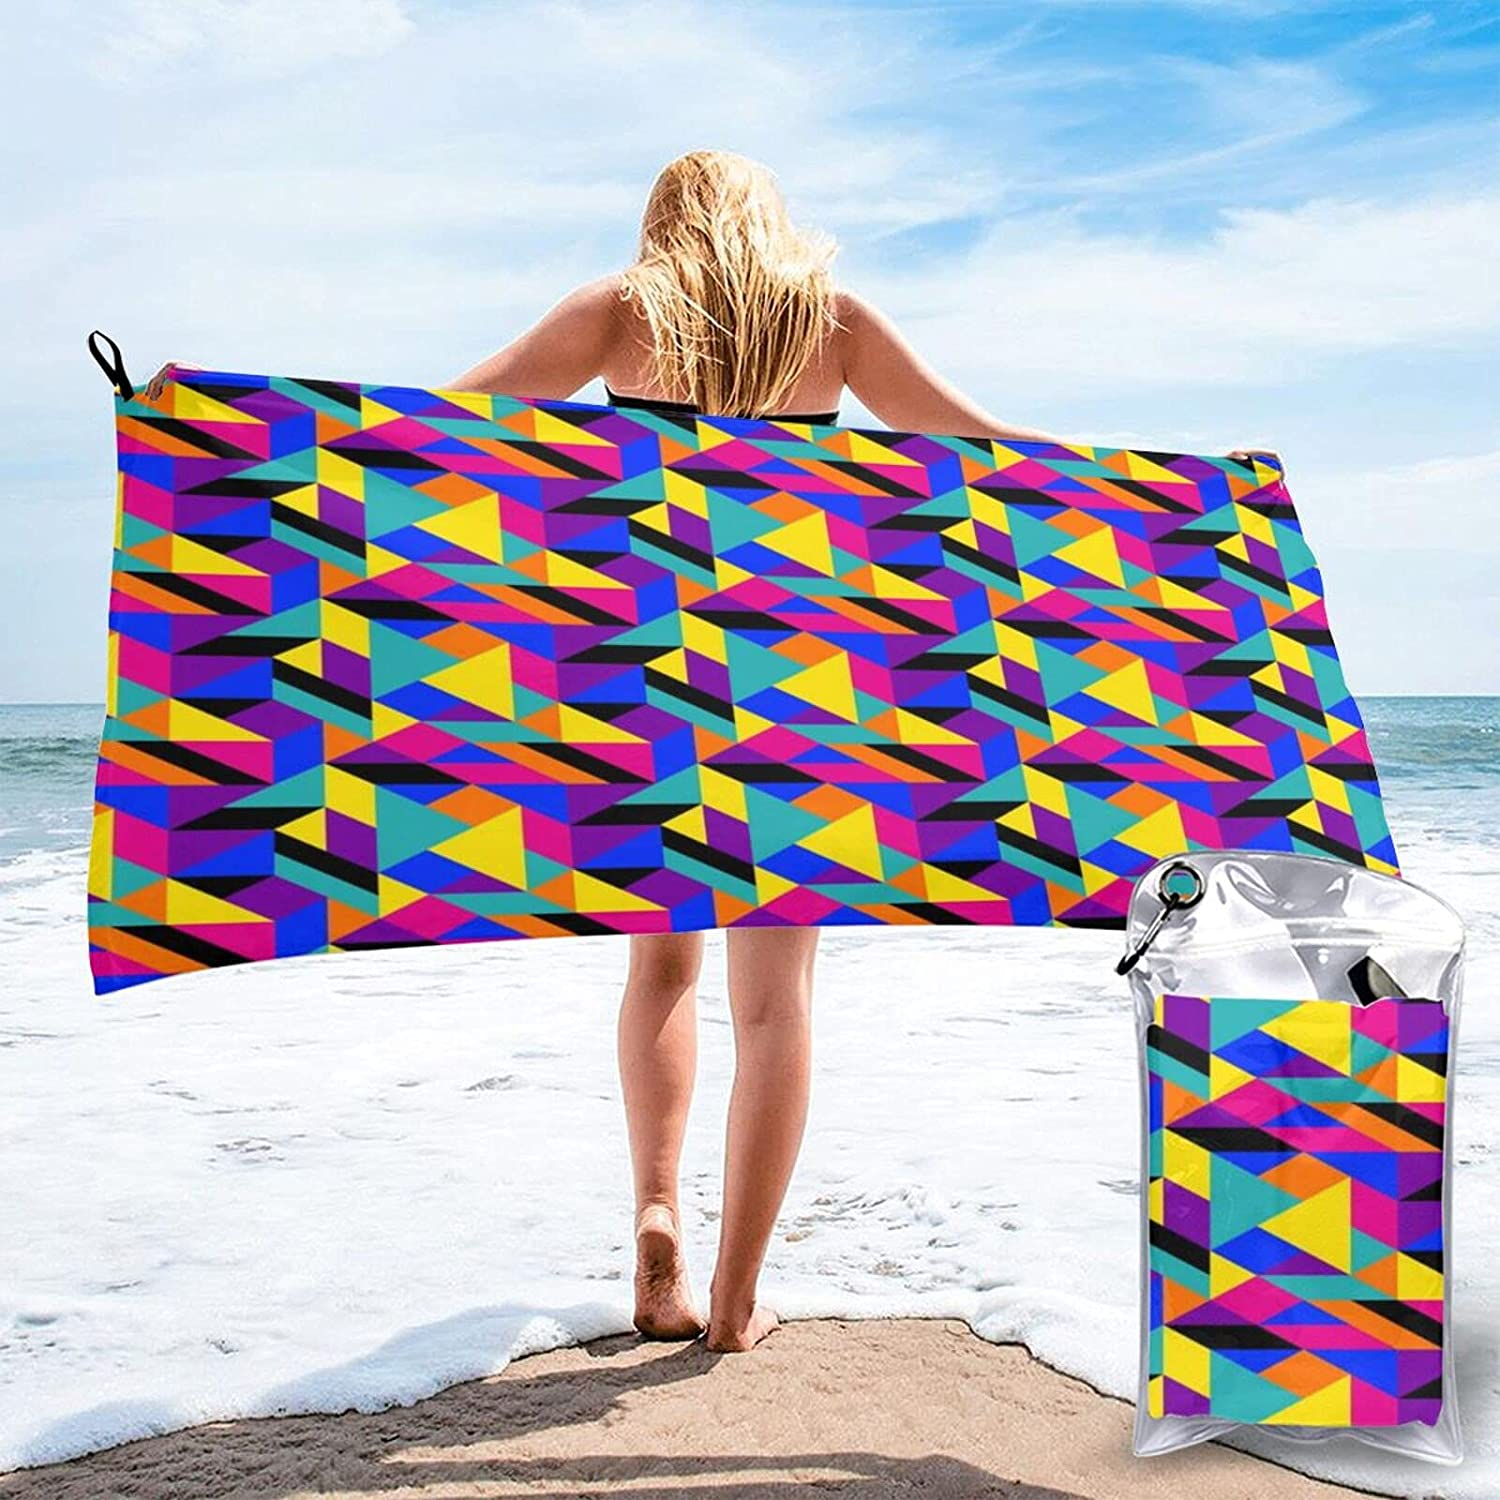 90s Geometric Limited Special Price Microfibre Pool Beach Quick Dry Travel Towels Ligh Popular shop is the lowest price challenge